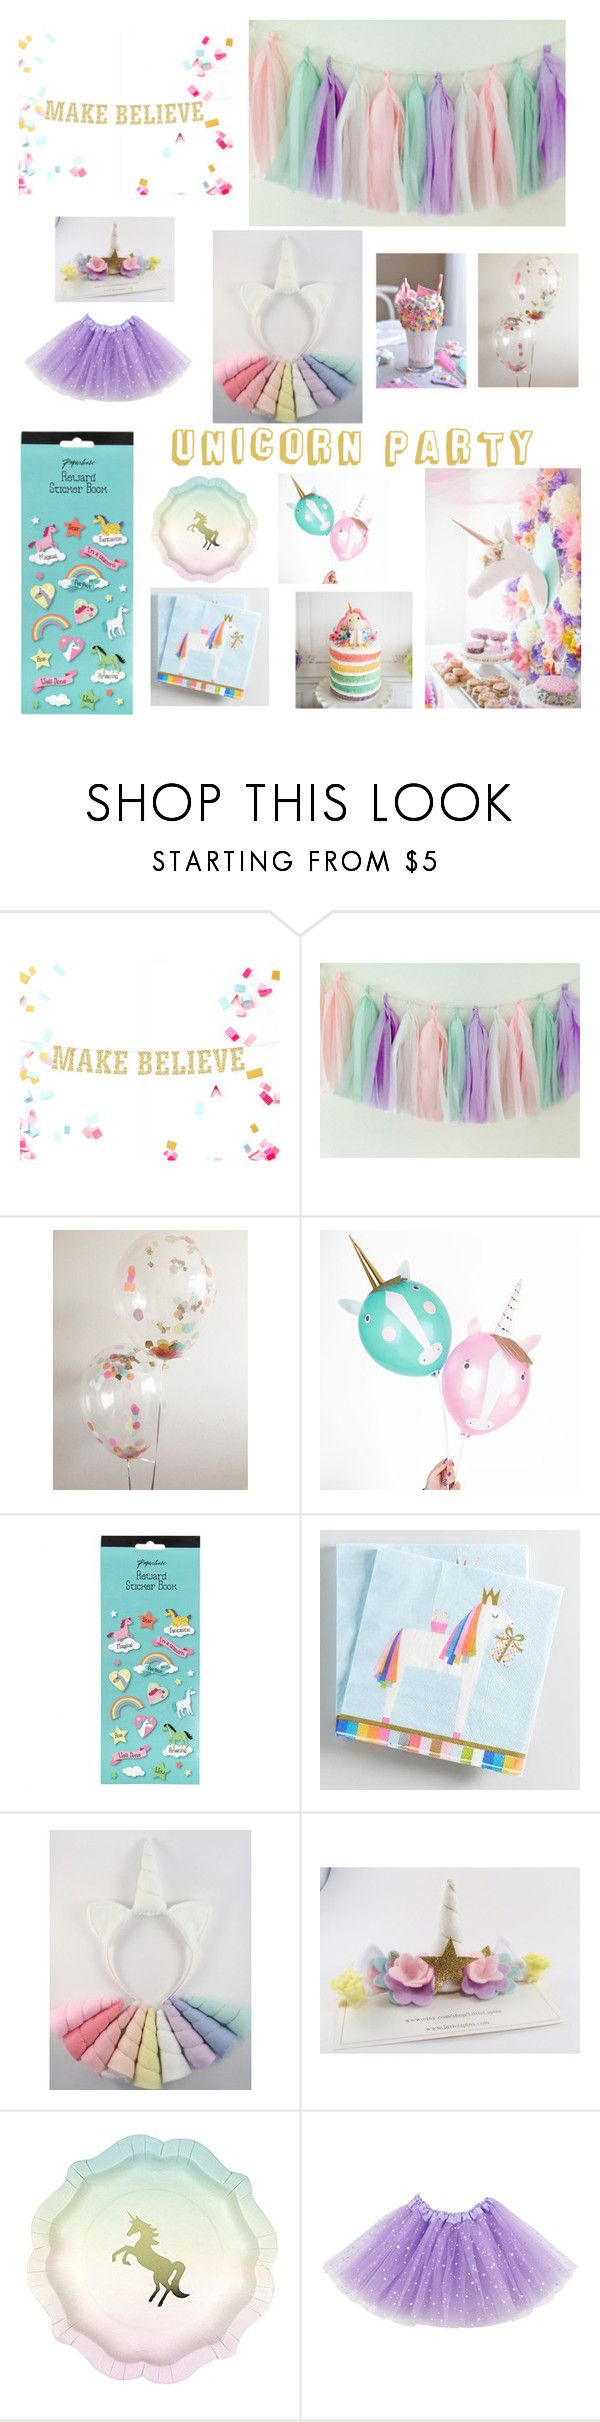 """""""Unicorn Party Ideas"""" by littlelapins ❤ liked on Polyvore featuring interior, interiors, interior design, home, home decor, interior decorating, Cost Plus World Market and Talking Tables"""